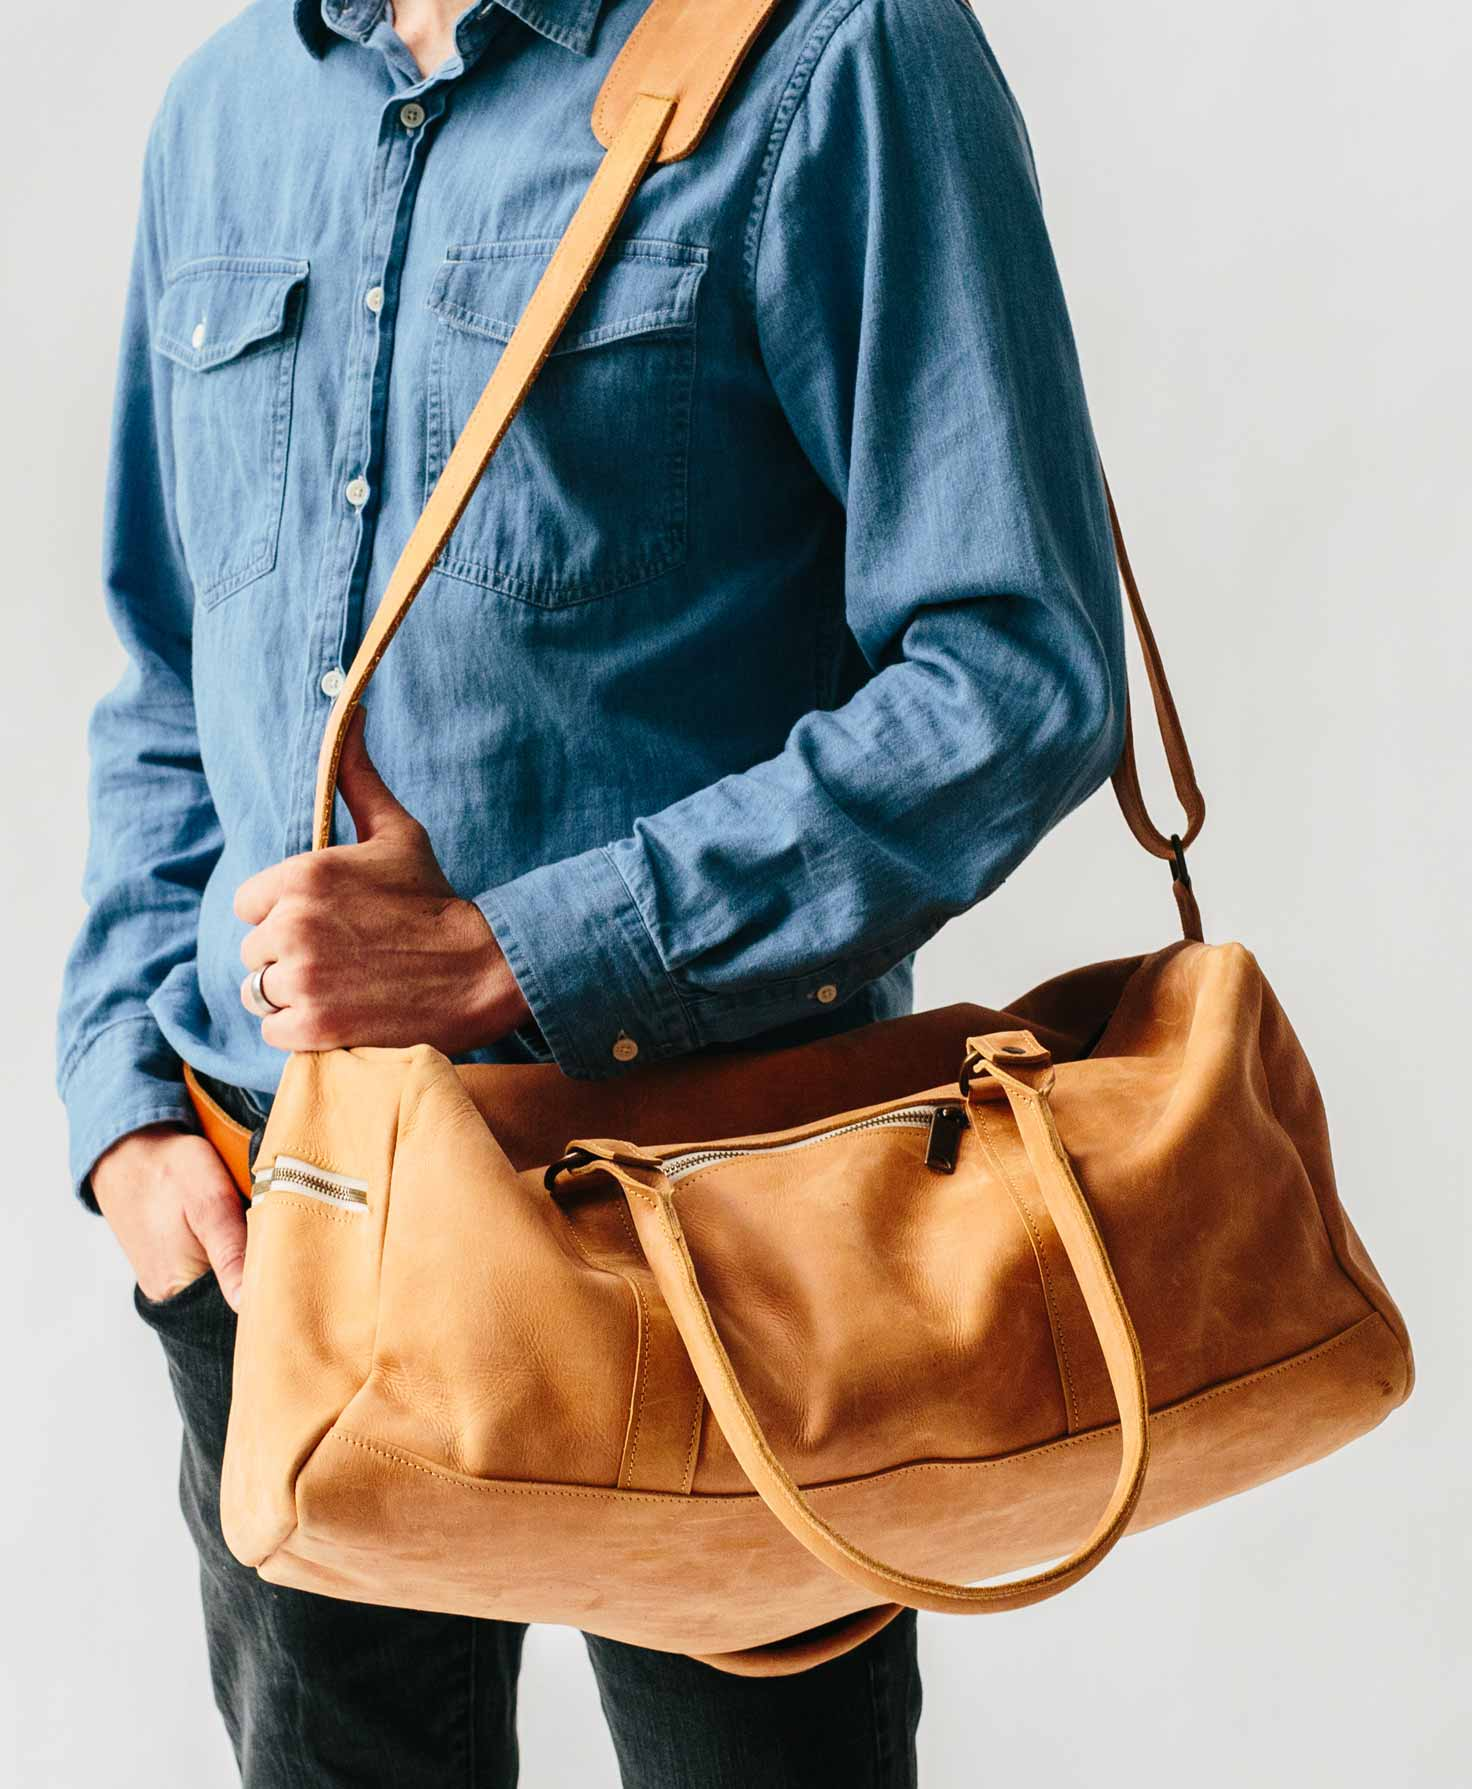 A male model is shown holding the Awasa Weekender Bag. He wears the bag on his shoulder, and it hangs down slightly below his waist.